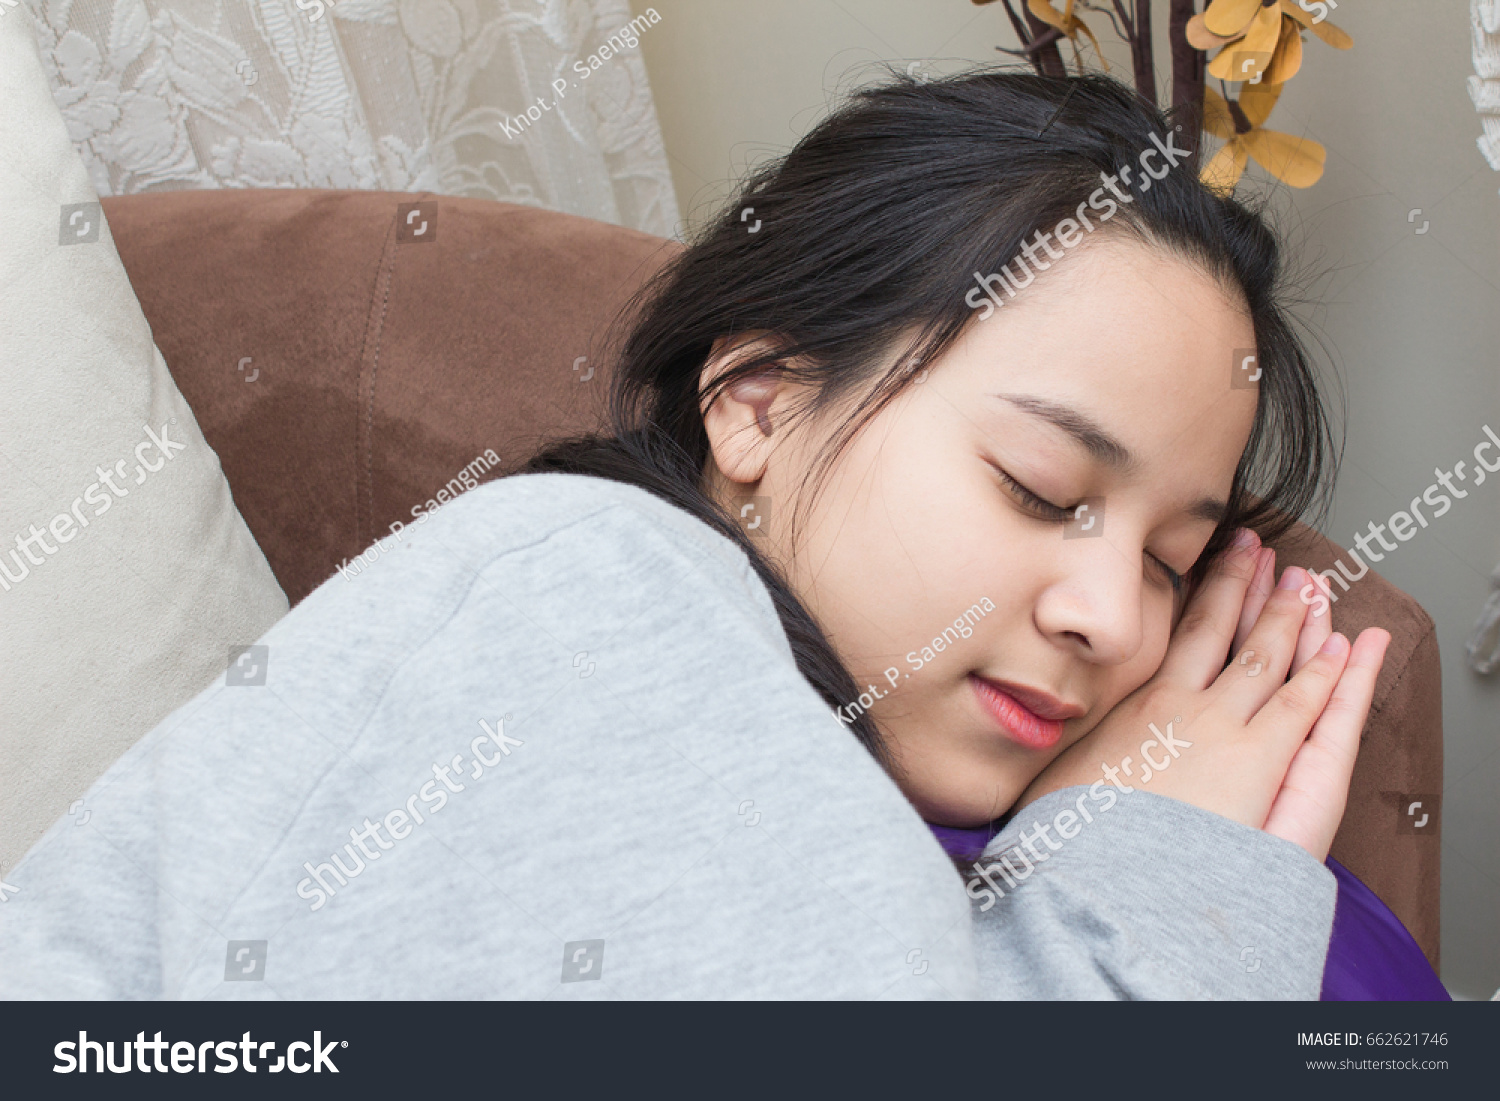 Teenager cute girl fall asleep on stock photo 662621746 shutterstock teenager cute girl fall asleep on sofa and have a good nap ccuart Gallery